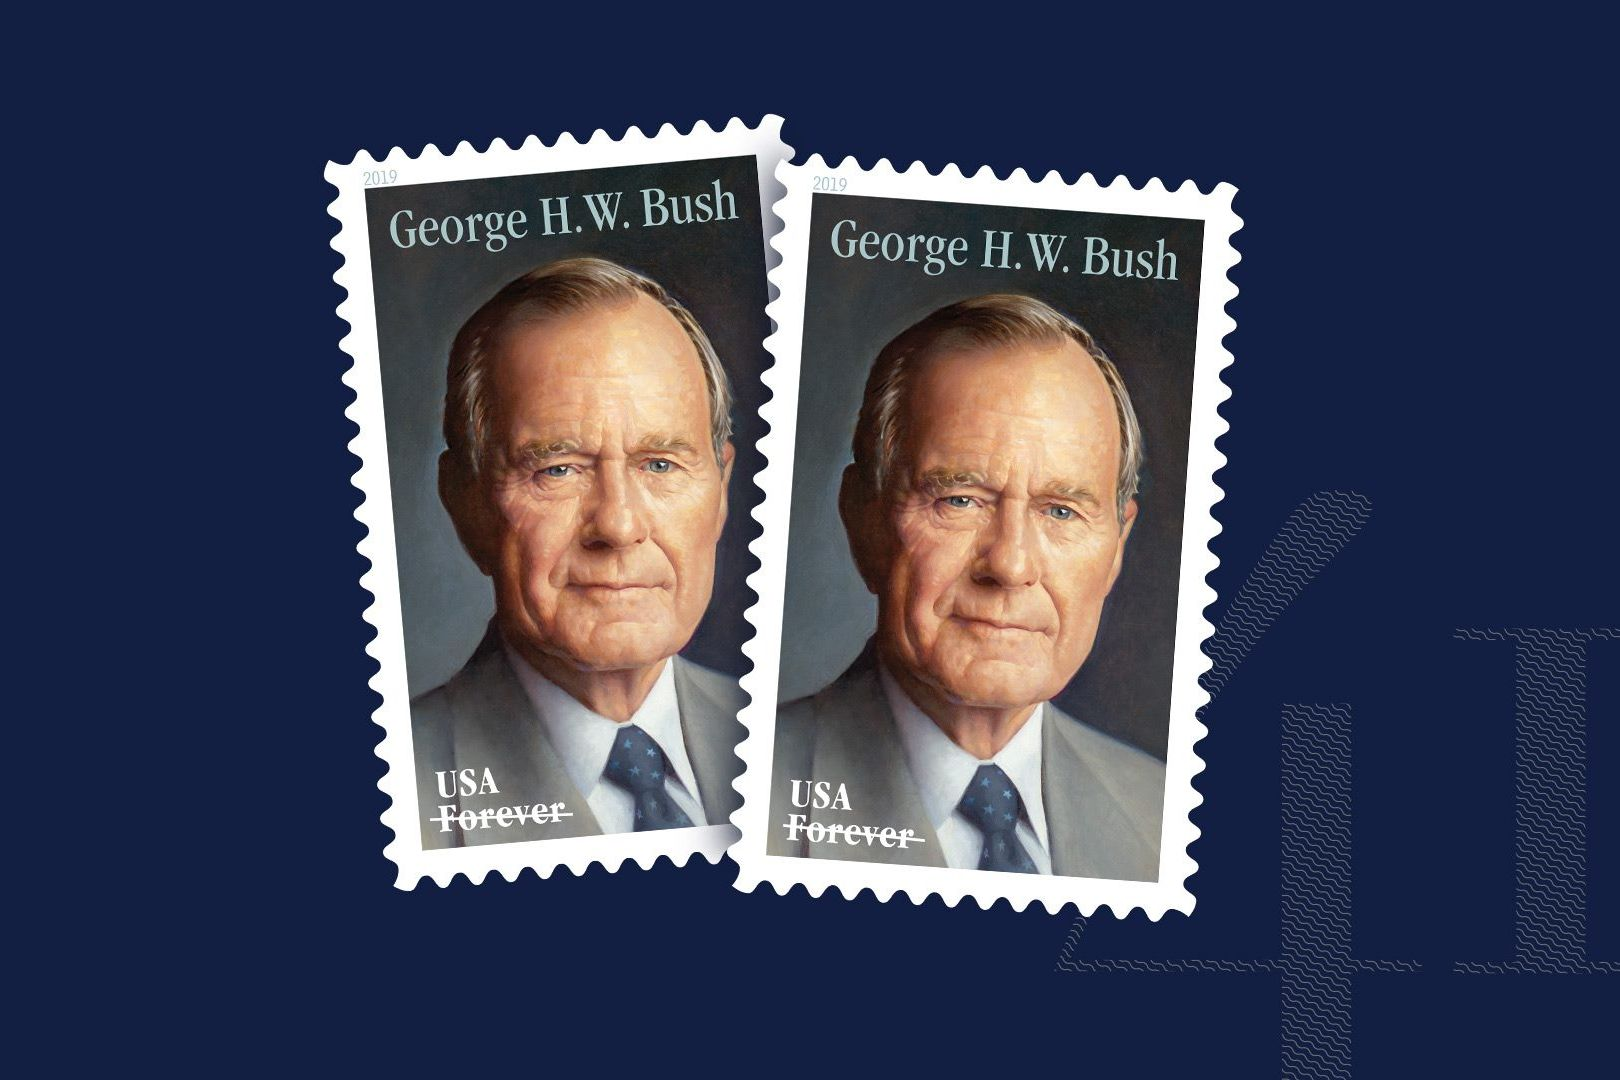 USPS Releases New Forever Stamp Commemorating Former President George H.W. Bush